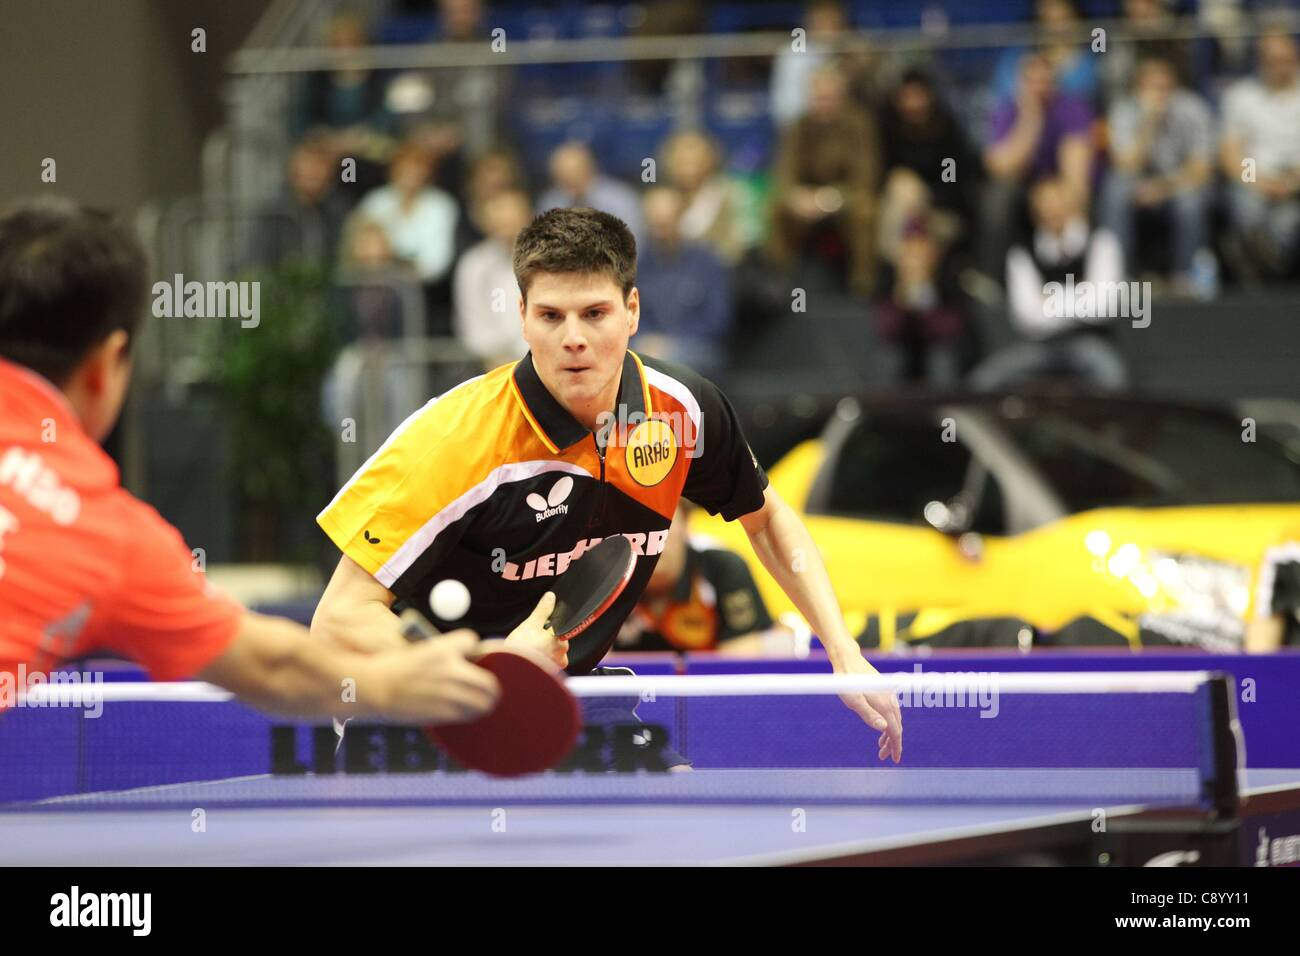 05 11 2011 Magdeburg, Germany. Dimitrij Ovtcharov Germany. Germany vs China Table Tennis   World team Cup 2011 in - Stock Image